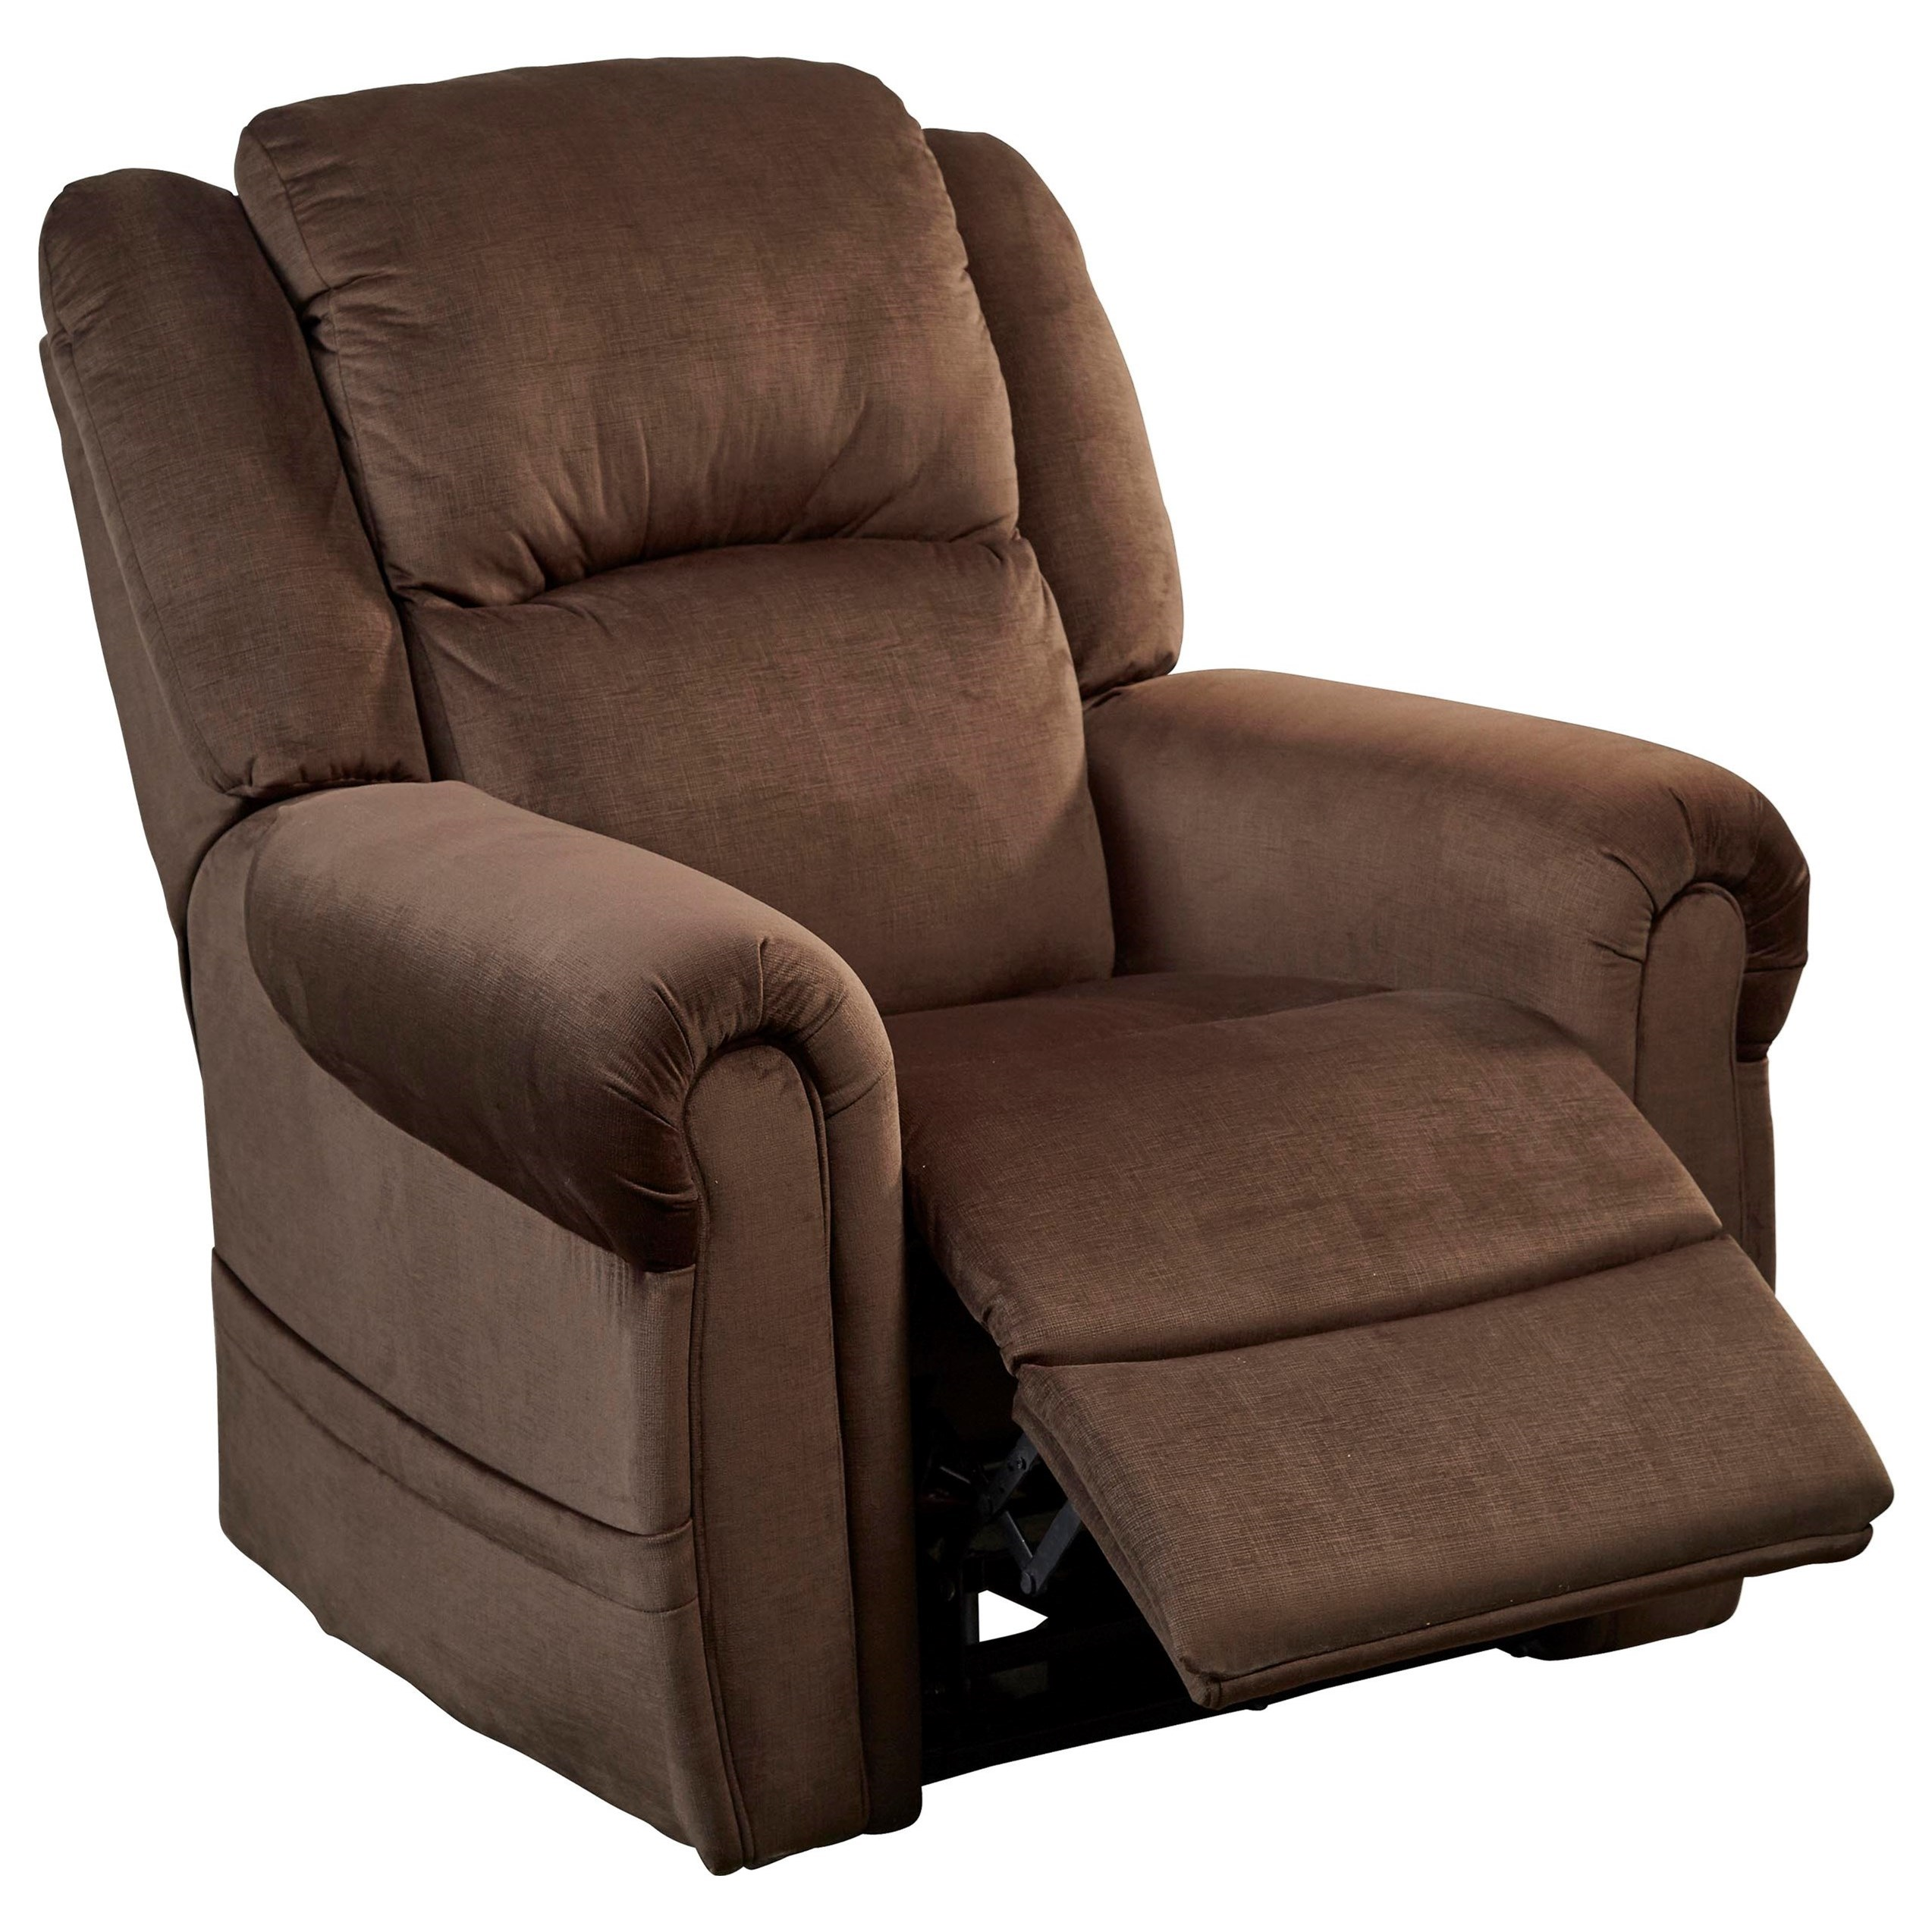 Spencer Power Lift Recliner with Power Headrest by Catnapper